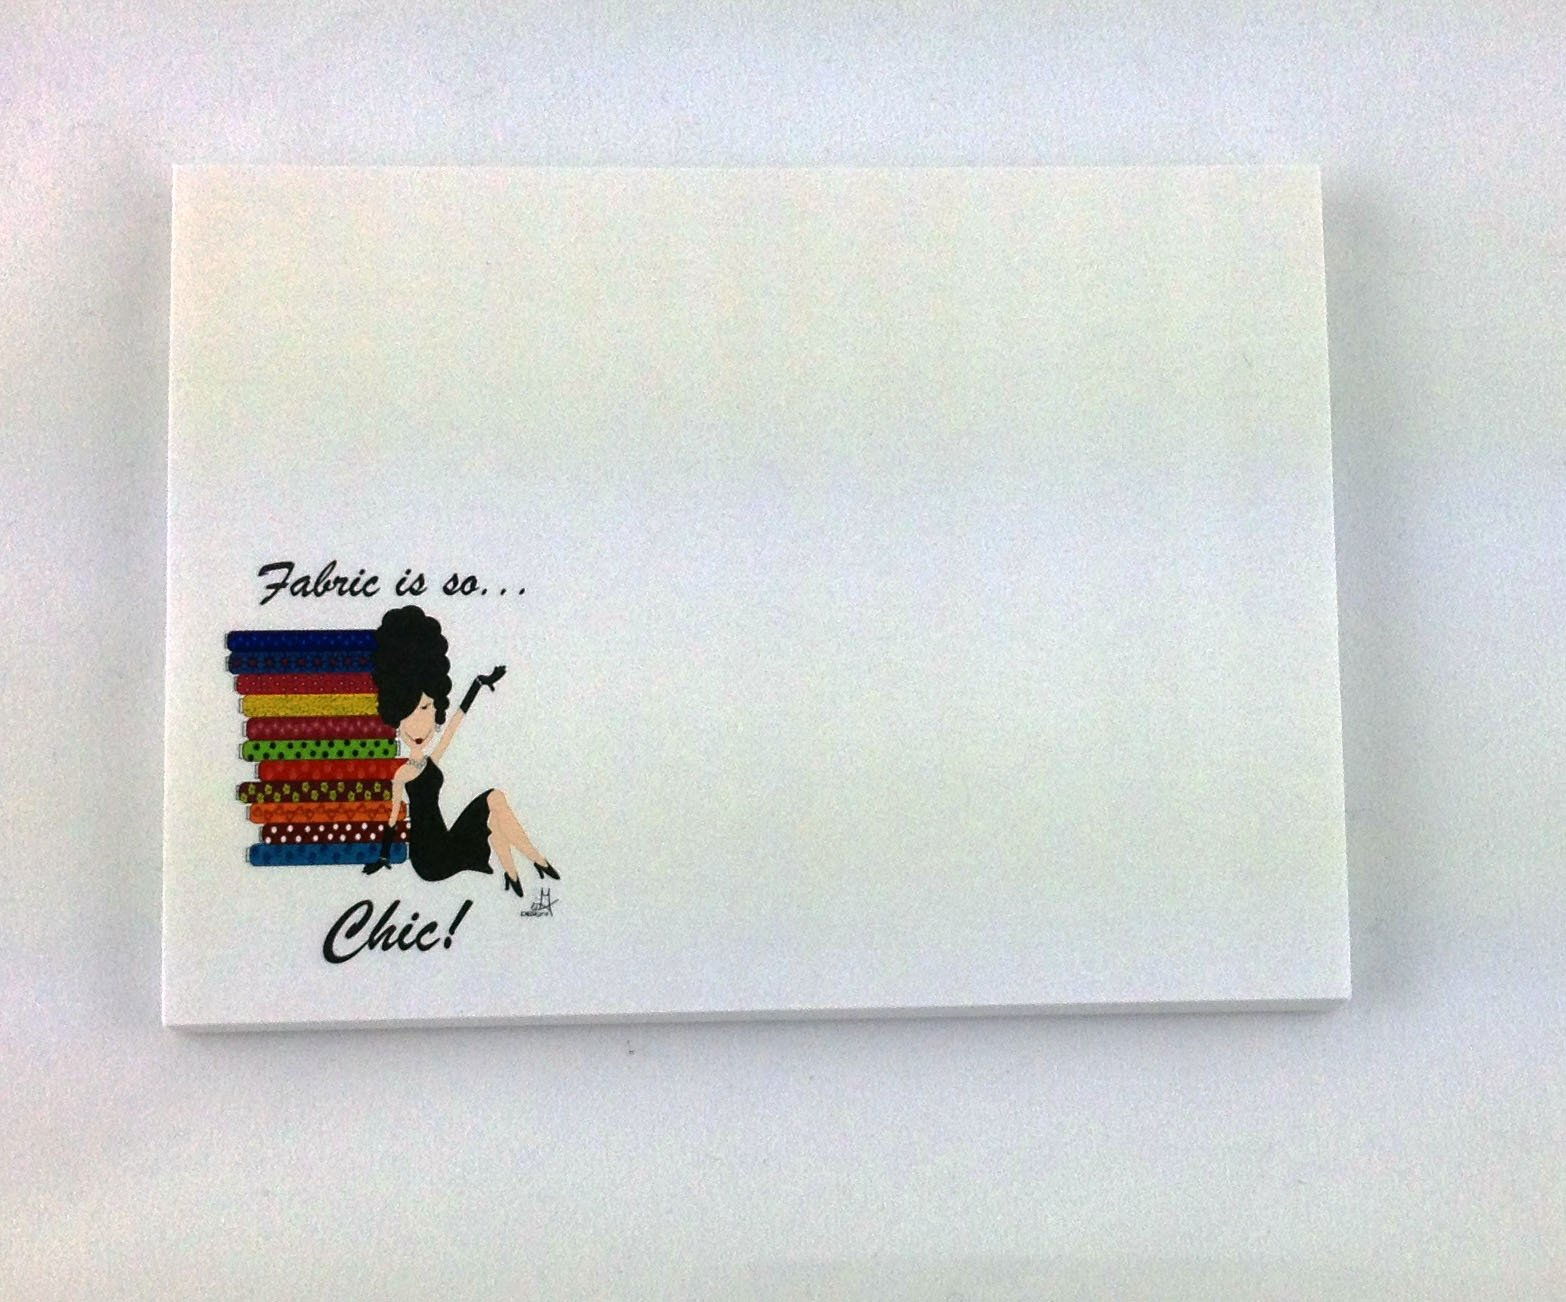 Fabric is So Chic Sticky Note Pad